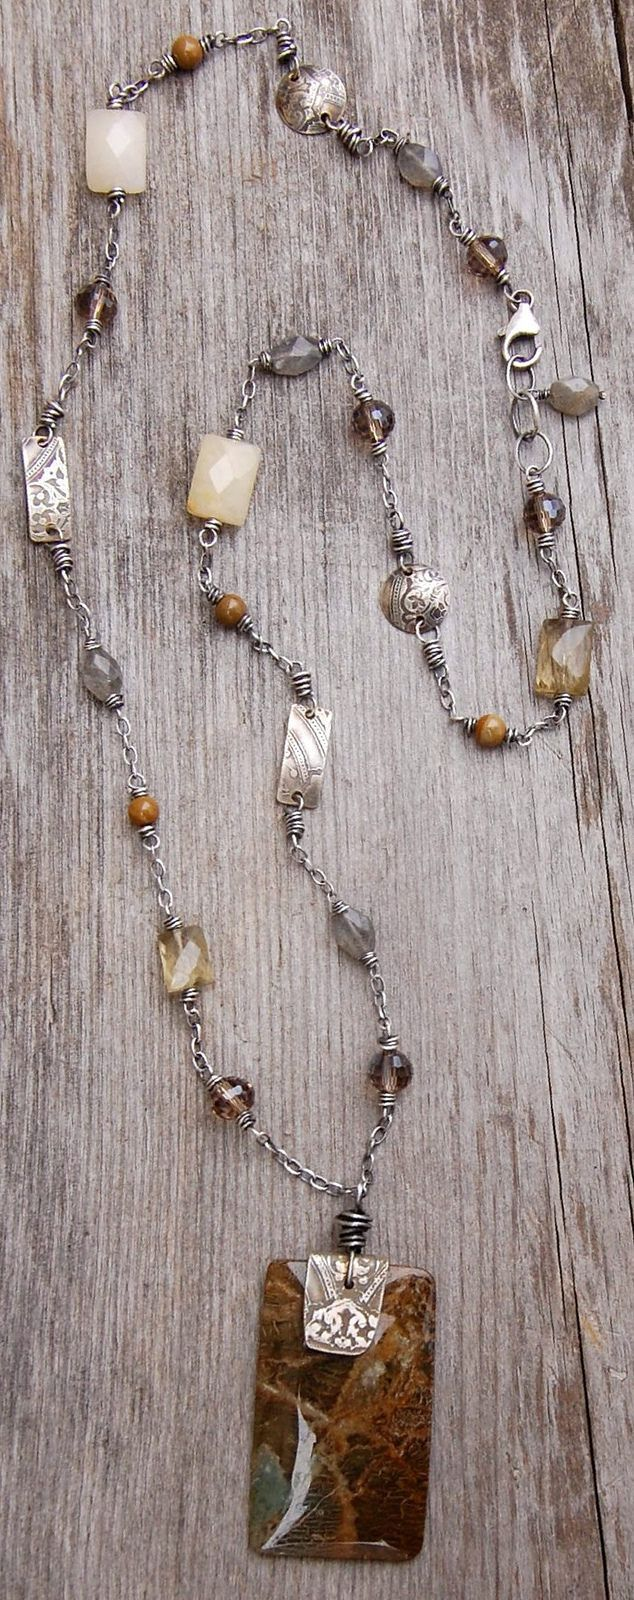 Necklace with glass beads and silver plaques.